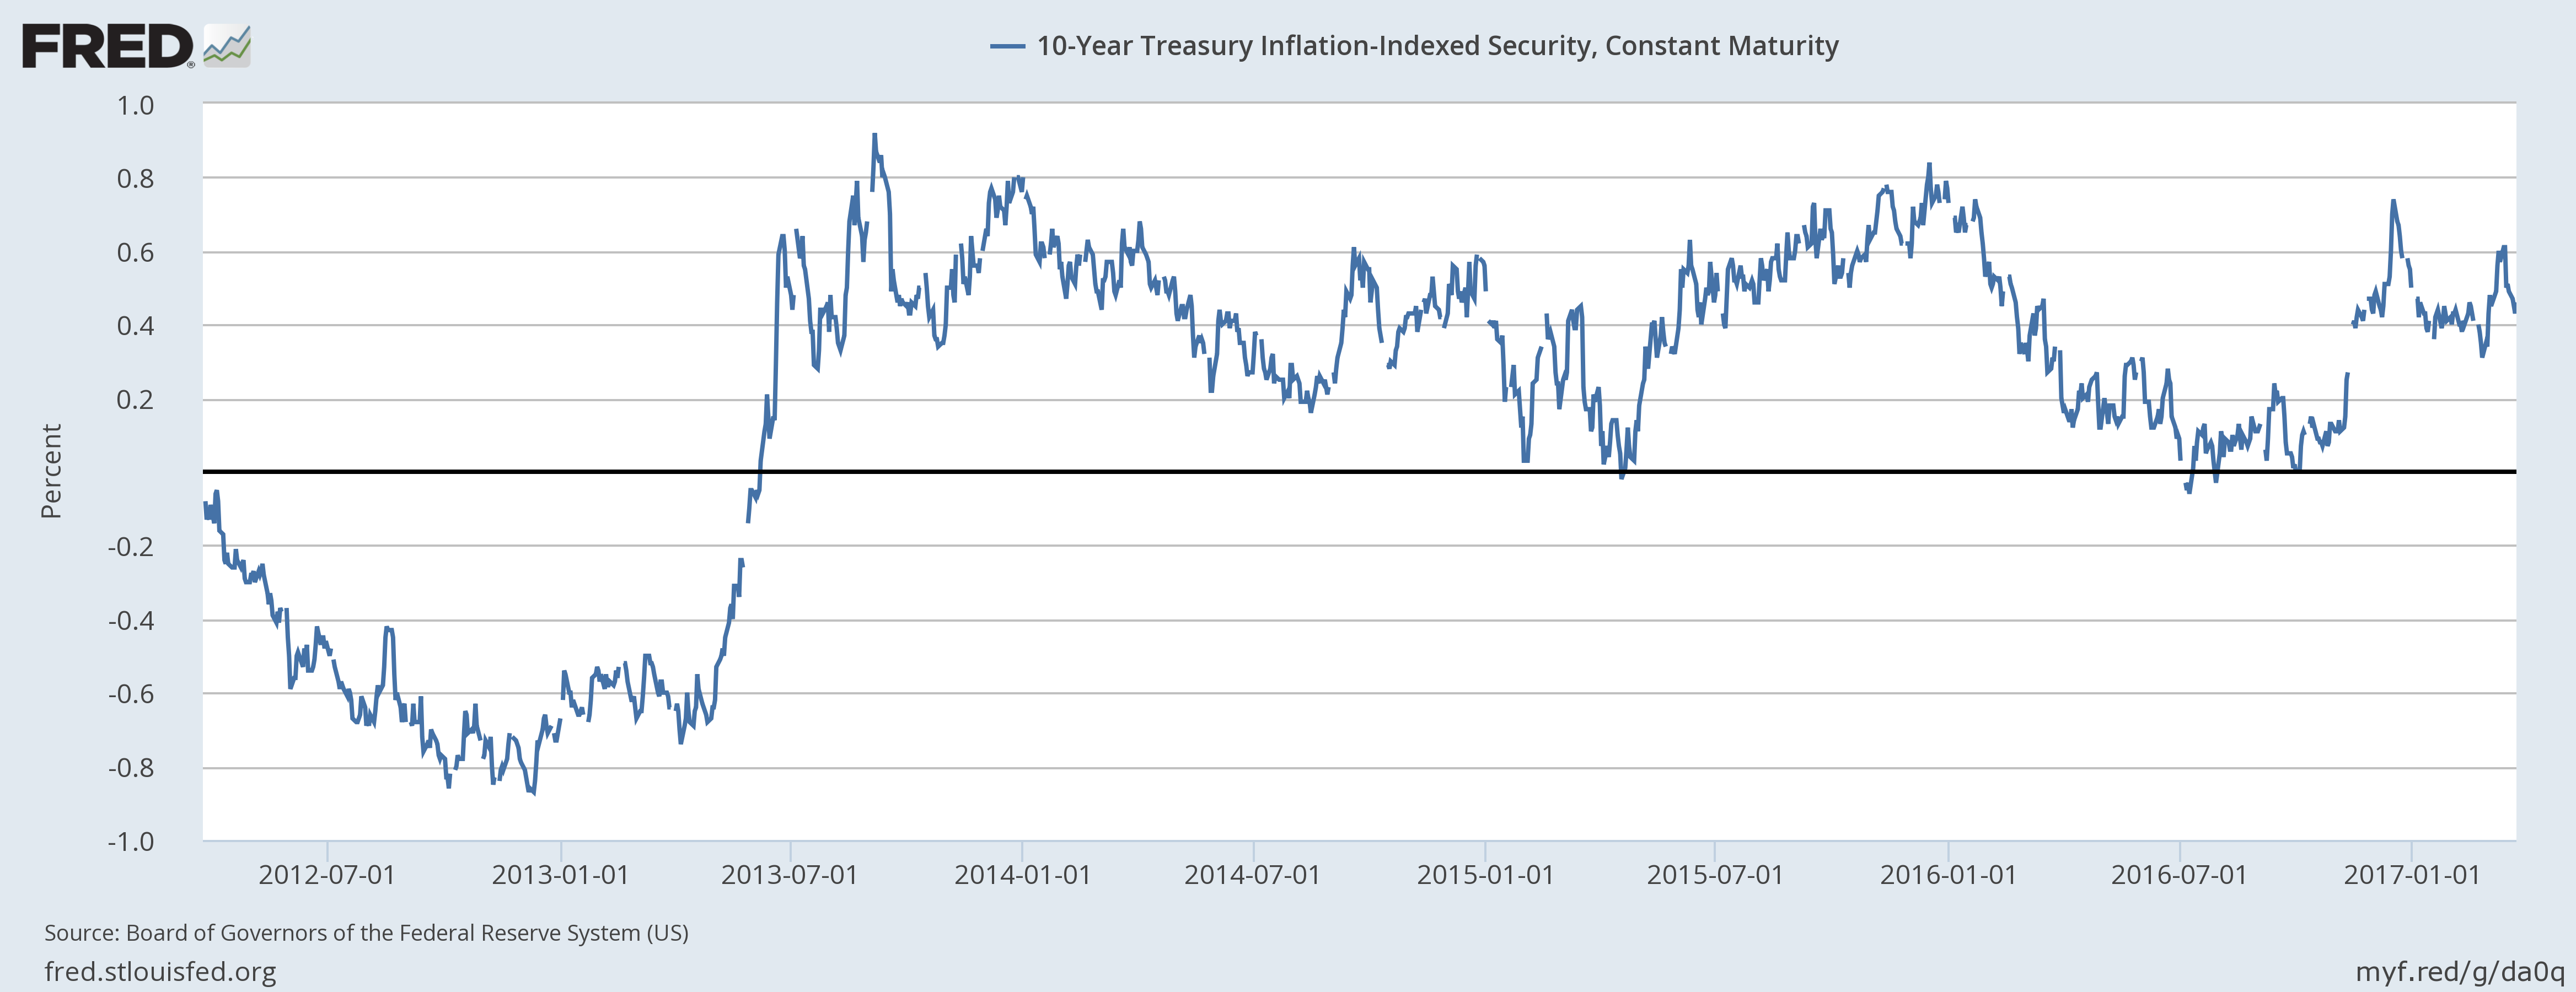 10 Year Treasury Inflation Indexed Security, 2012 - 2017